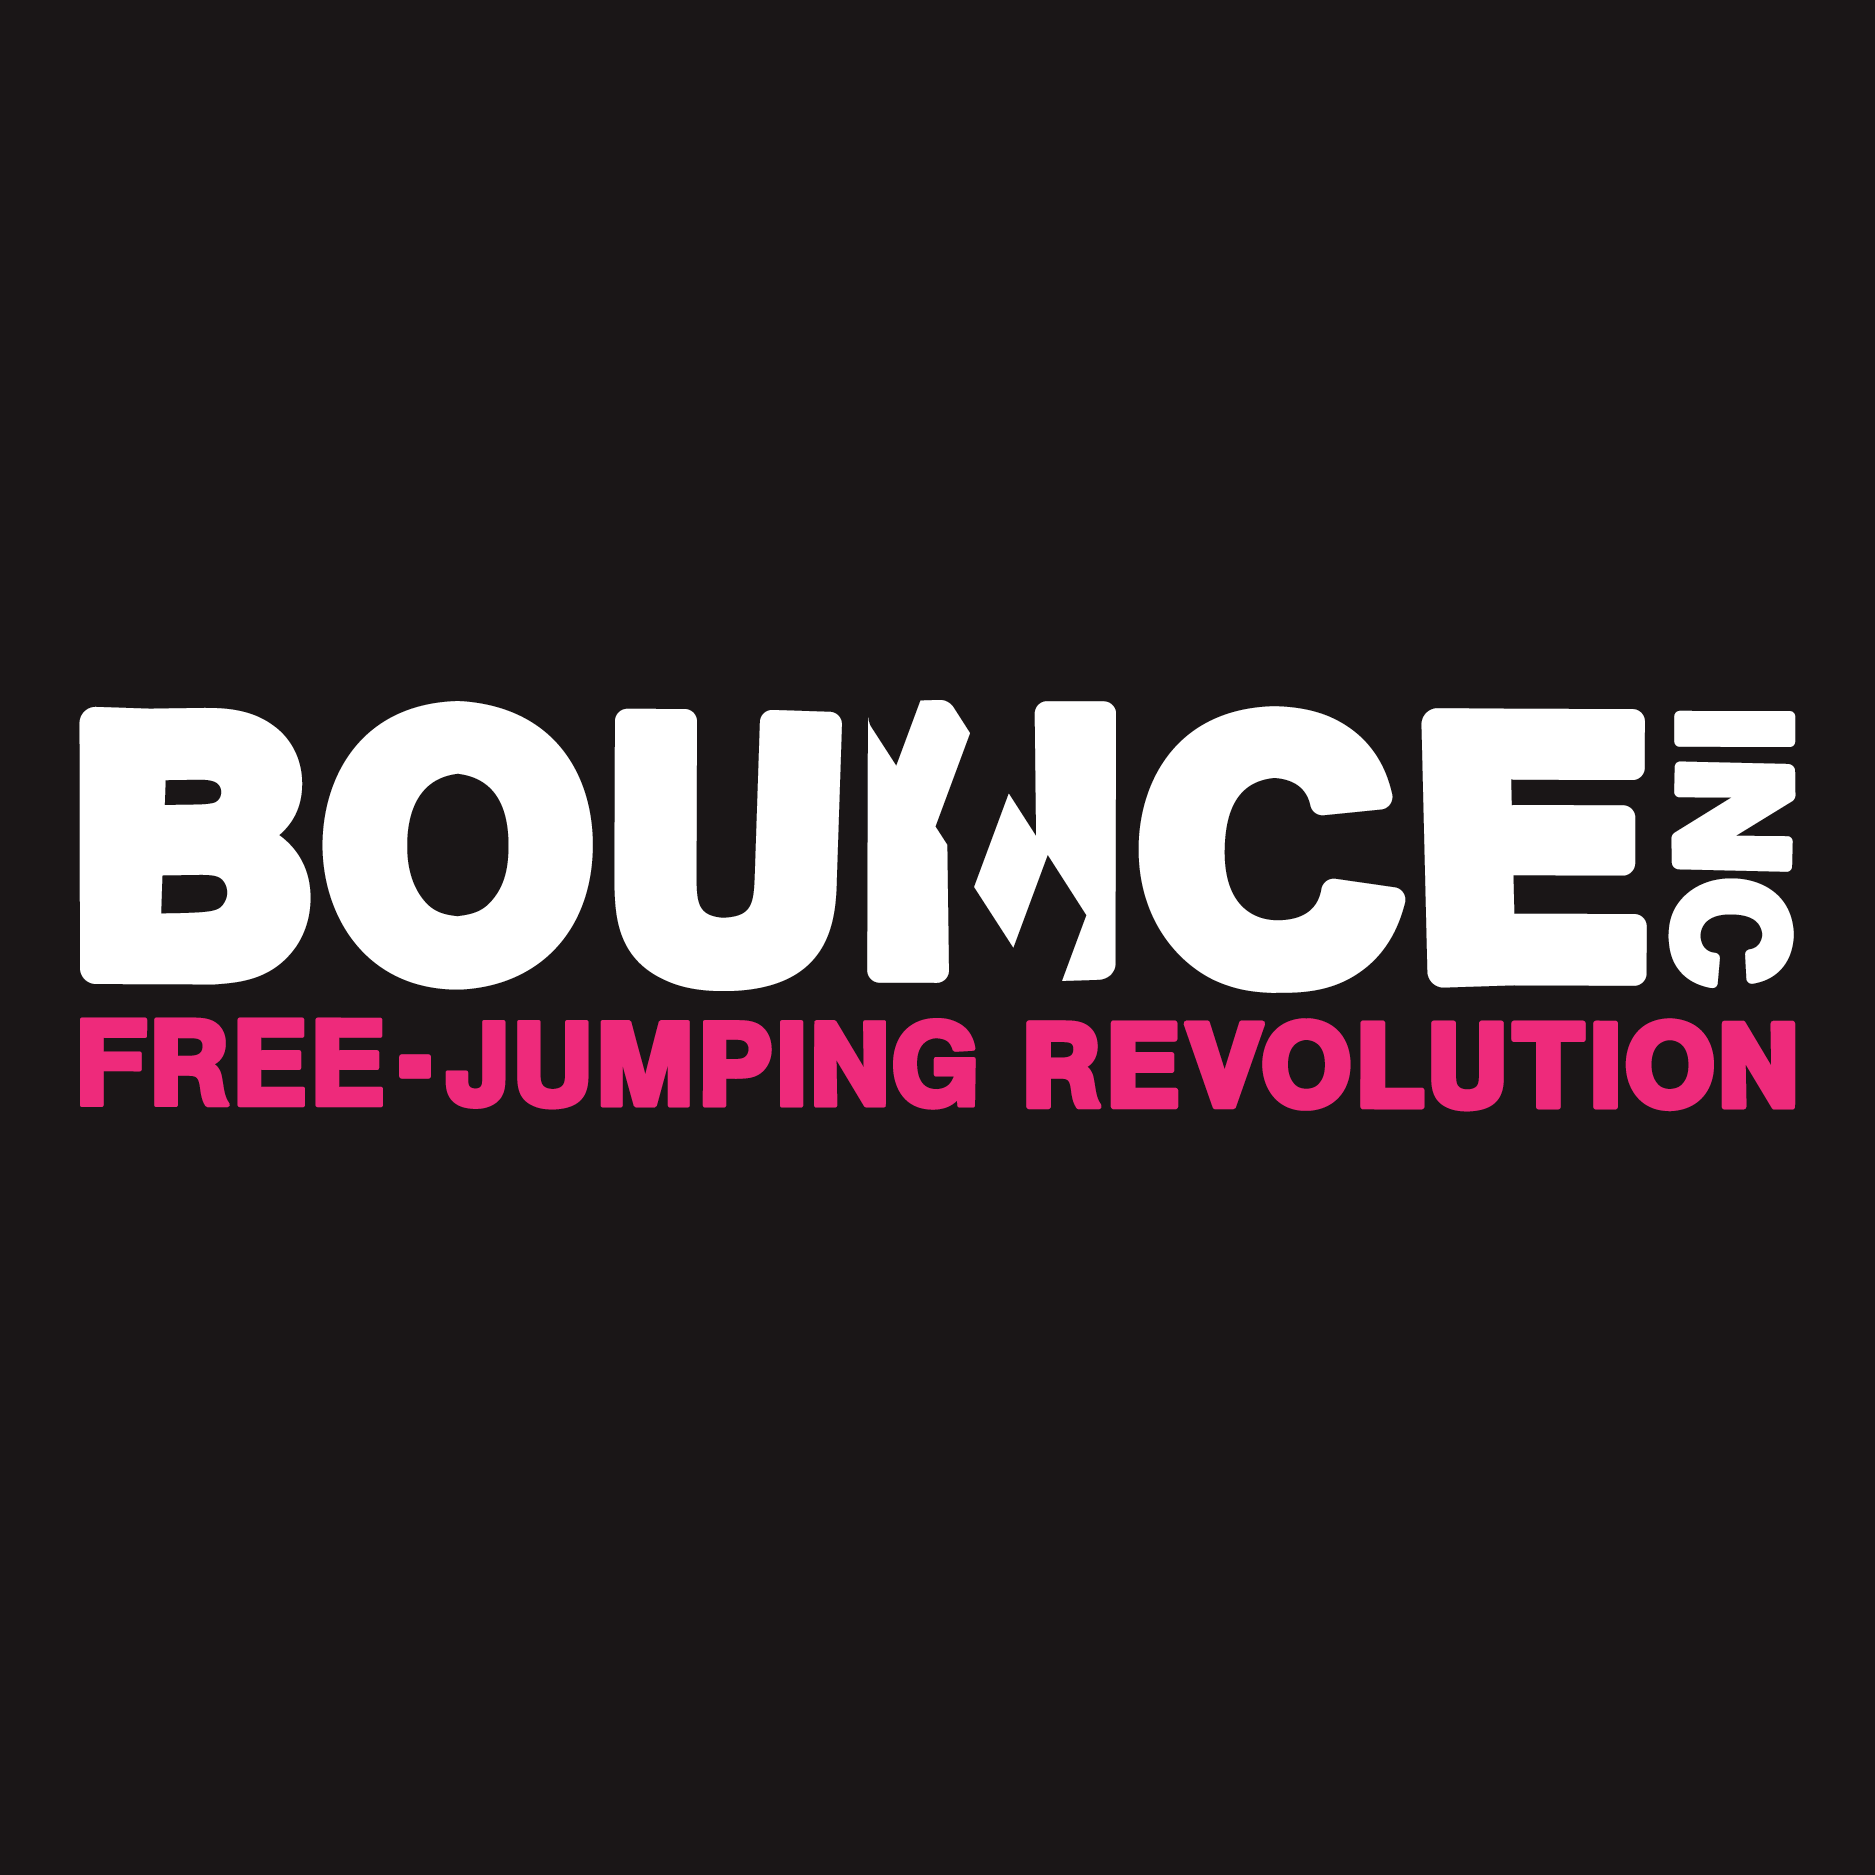 Bounce Free Jumping-Revolution